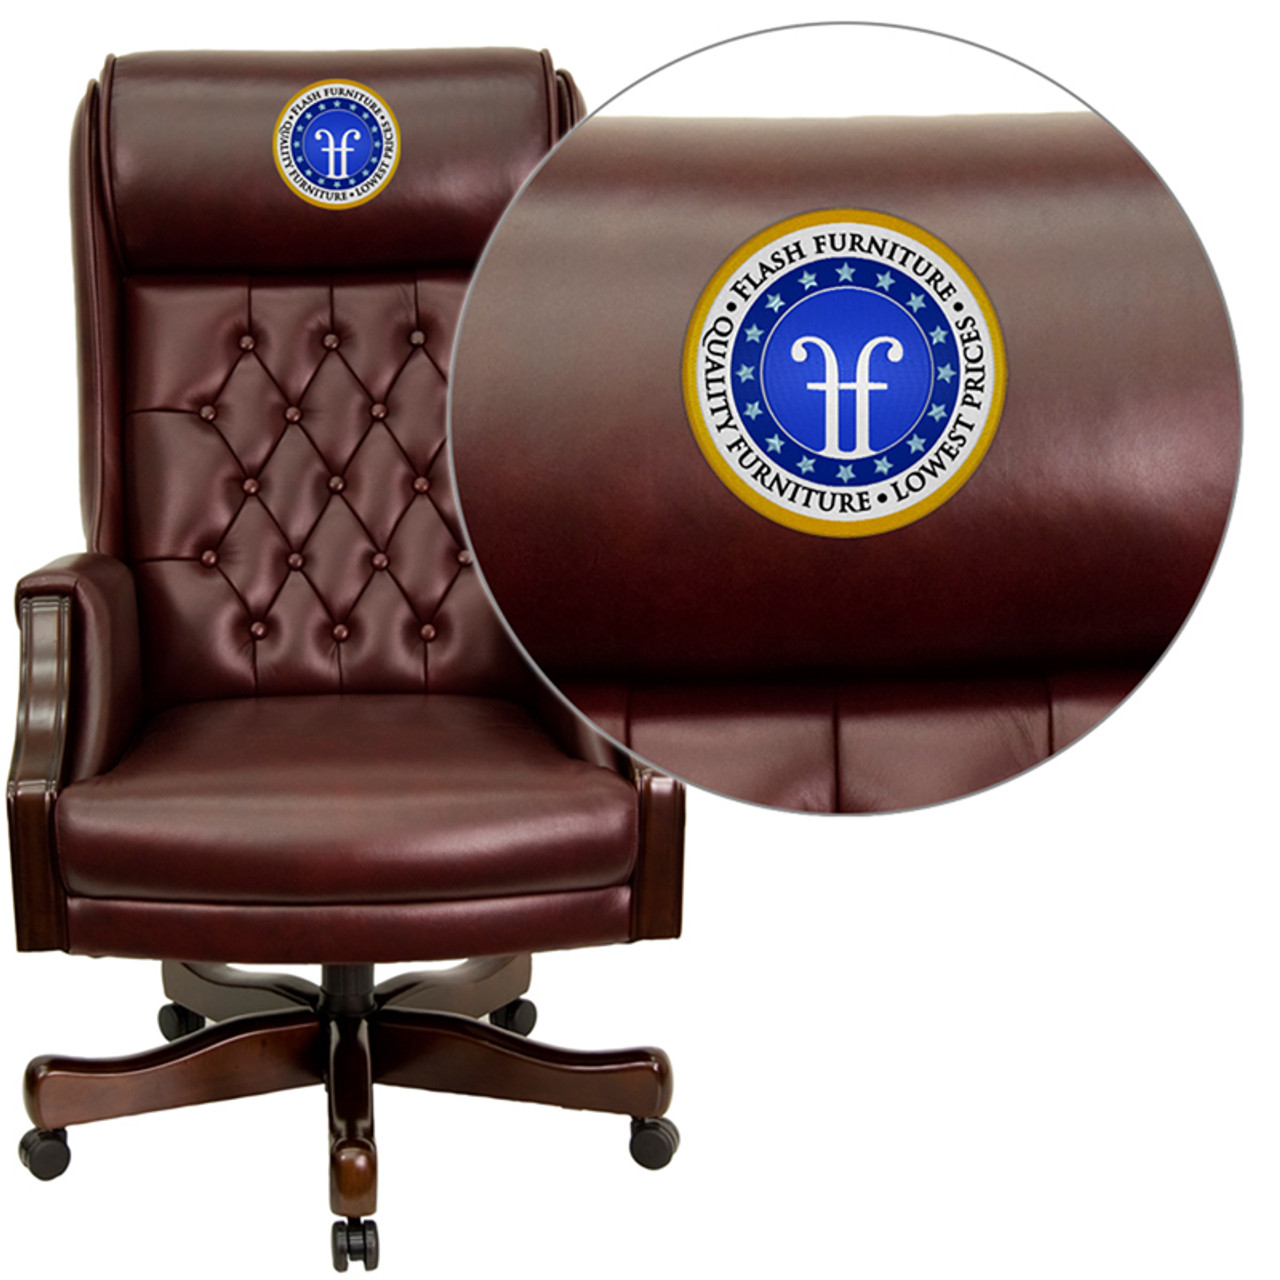 Super Embroidered High Back Traditional Tufted Burgundy Leather Executive Ergonomic Office Chair With Headrest And Arms Machost Co Dining Chair Design Ideas Machostcouk